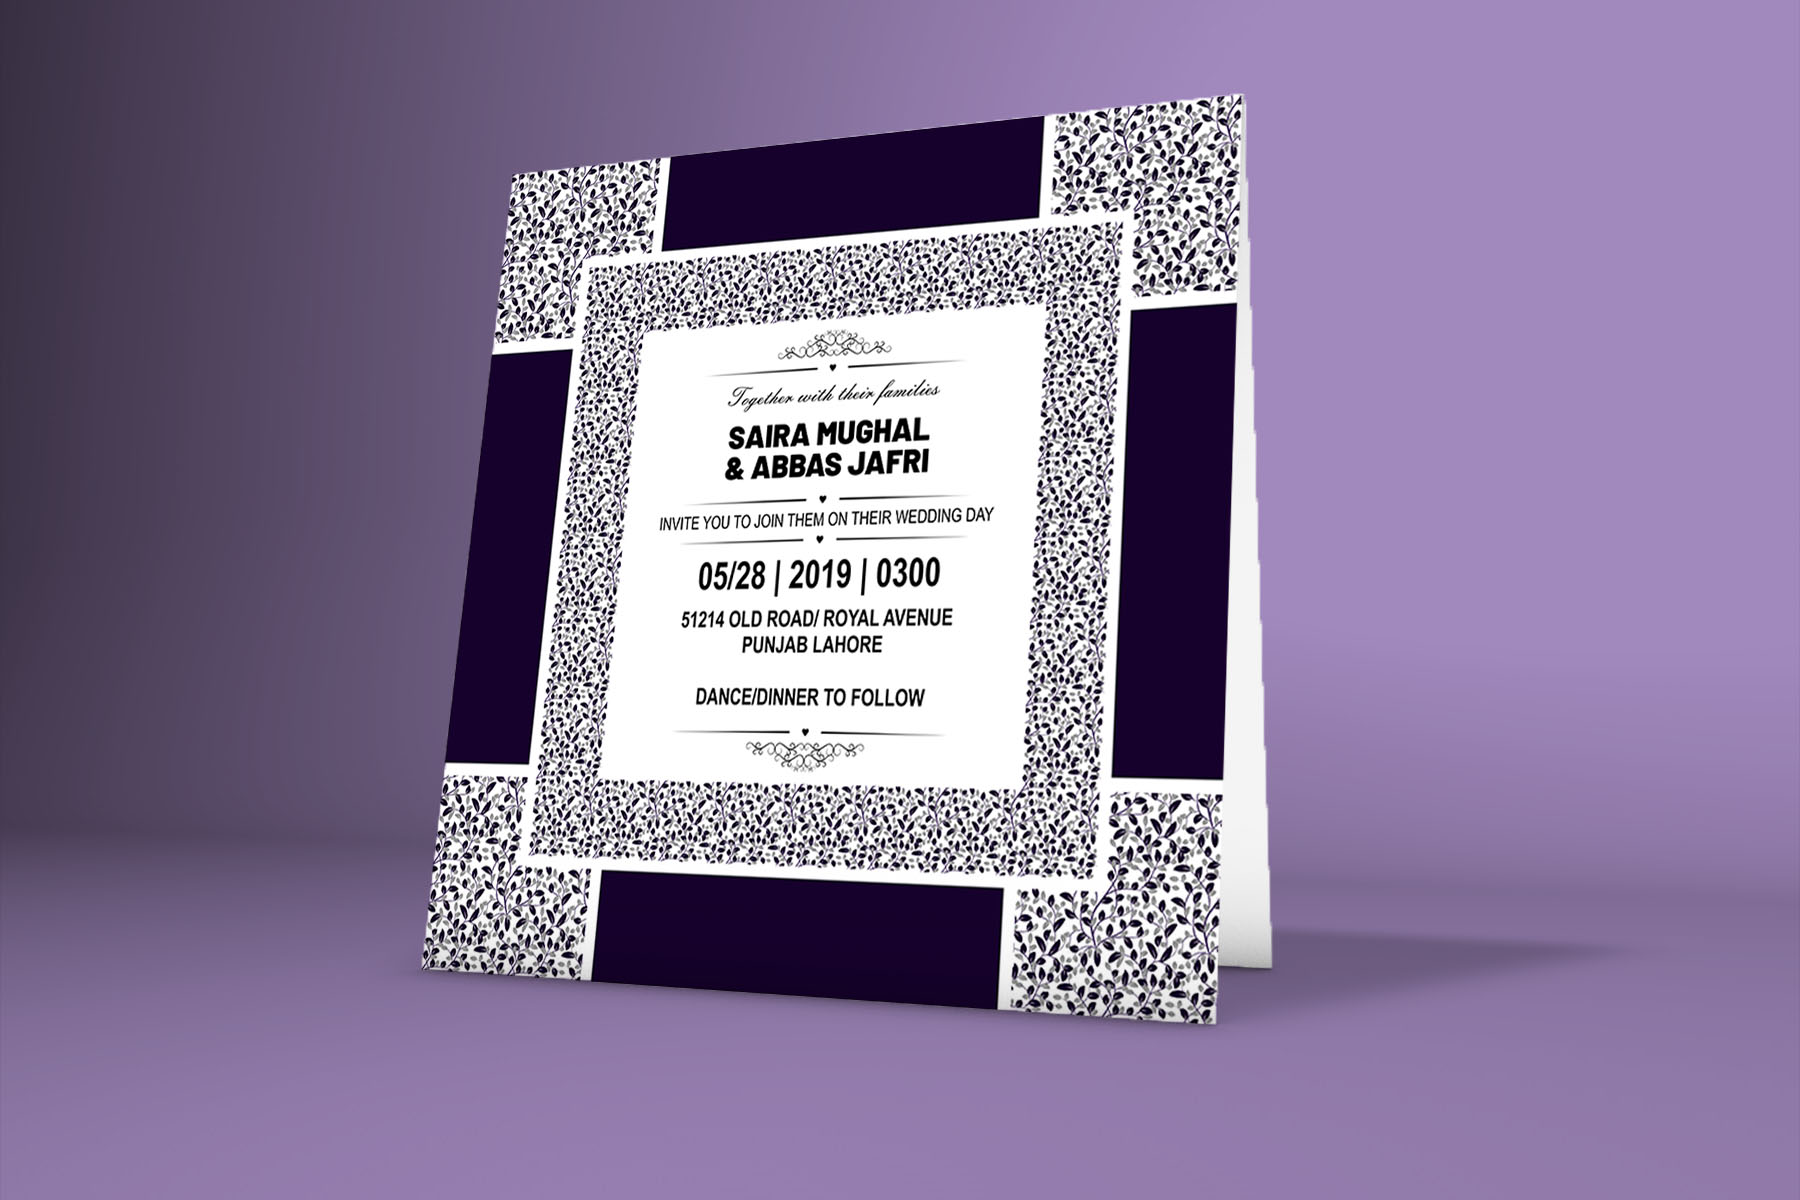 Download Free Classical Wedding Invitation Card Graphic By Patternhousepk for Cricut Explore, Silhouette and other cutting machines.